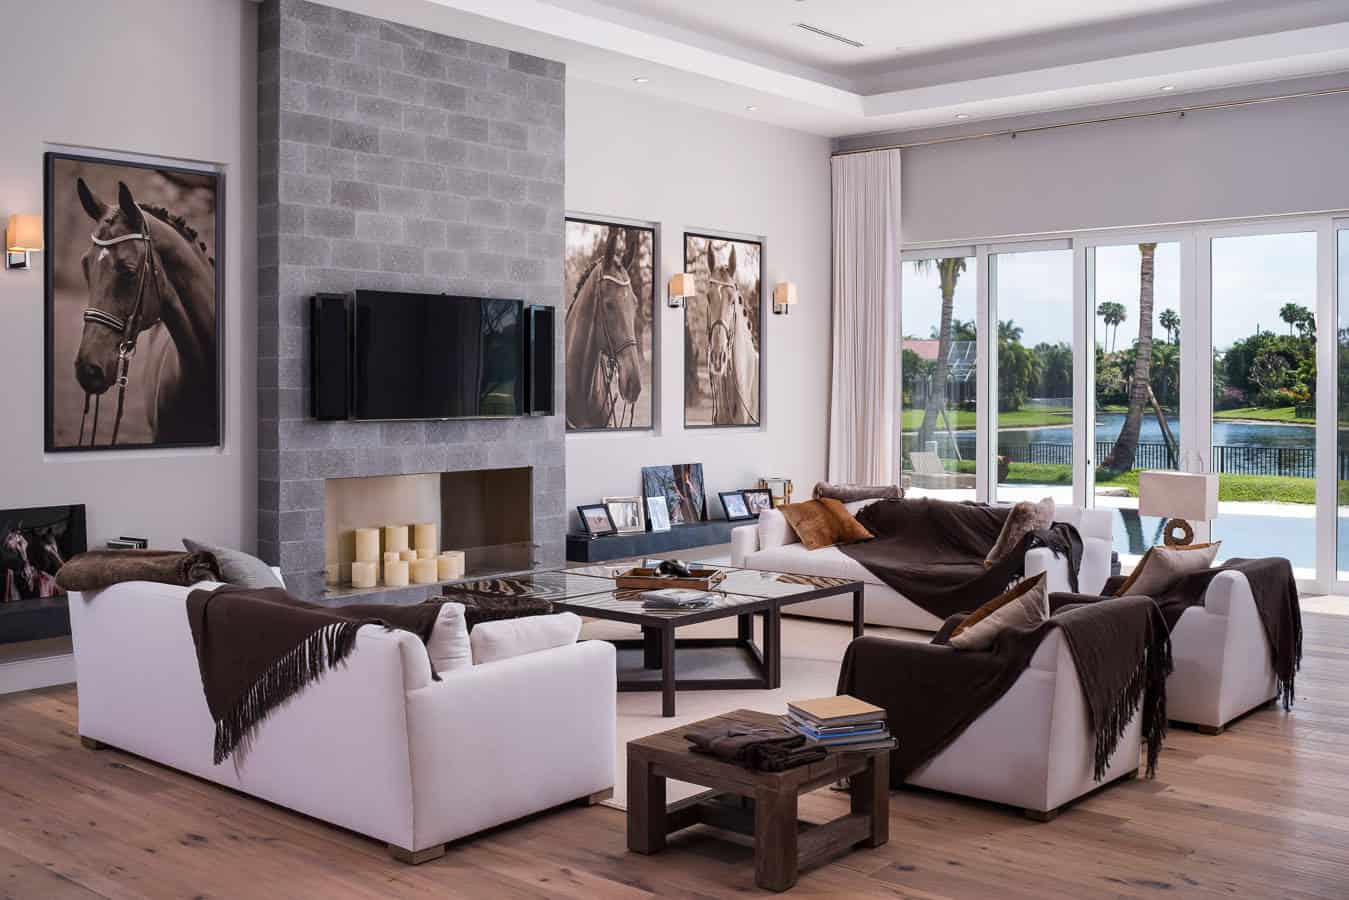 Living Room Decor Ideas: Giddy Up With These Amazing Horse Decor Ideas